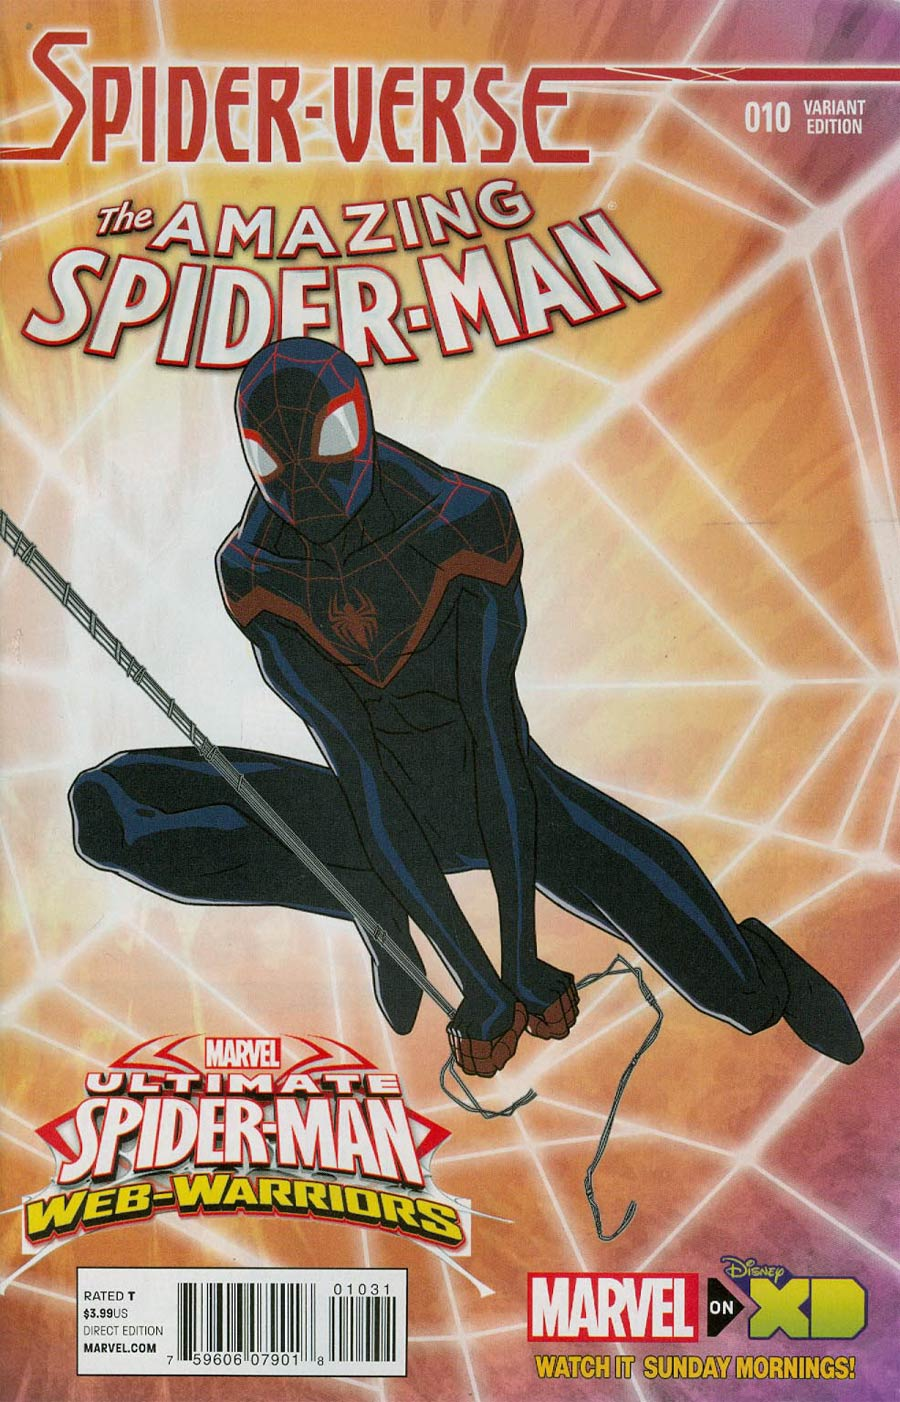 Amazing Spider-Man Vol 3 #10 Cover B Incentive Marvel Animation Spider-Verse Variant Cover (Spider-Verse Tie-In)